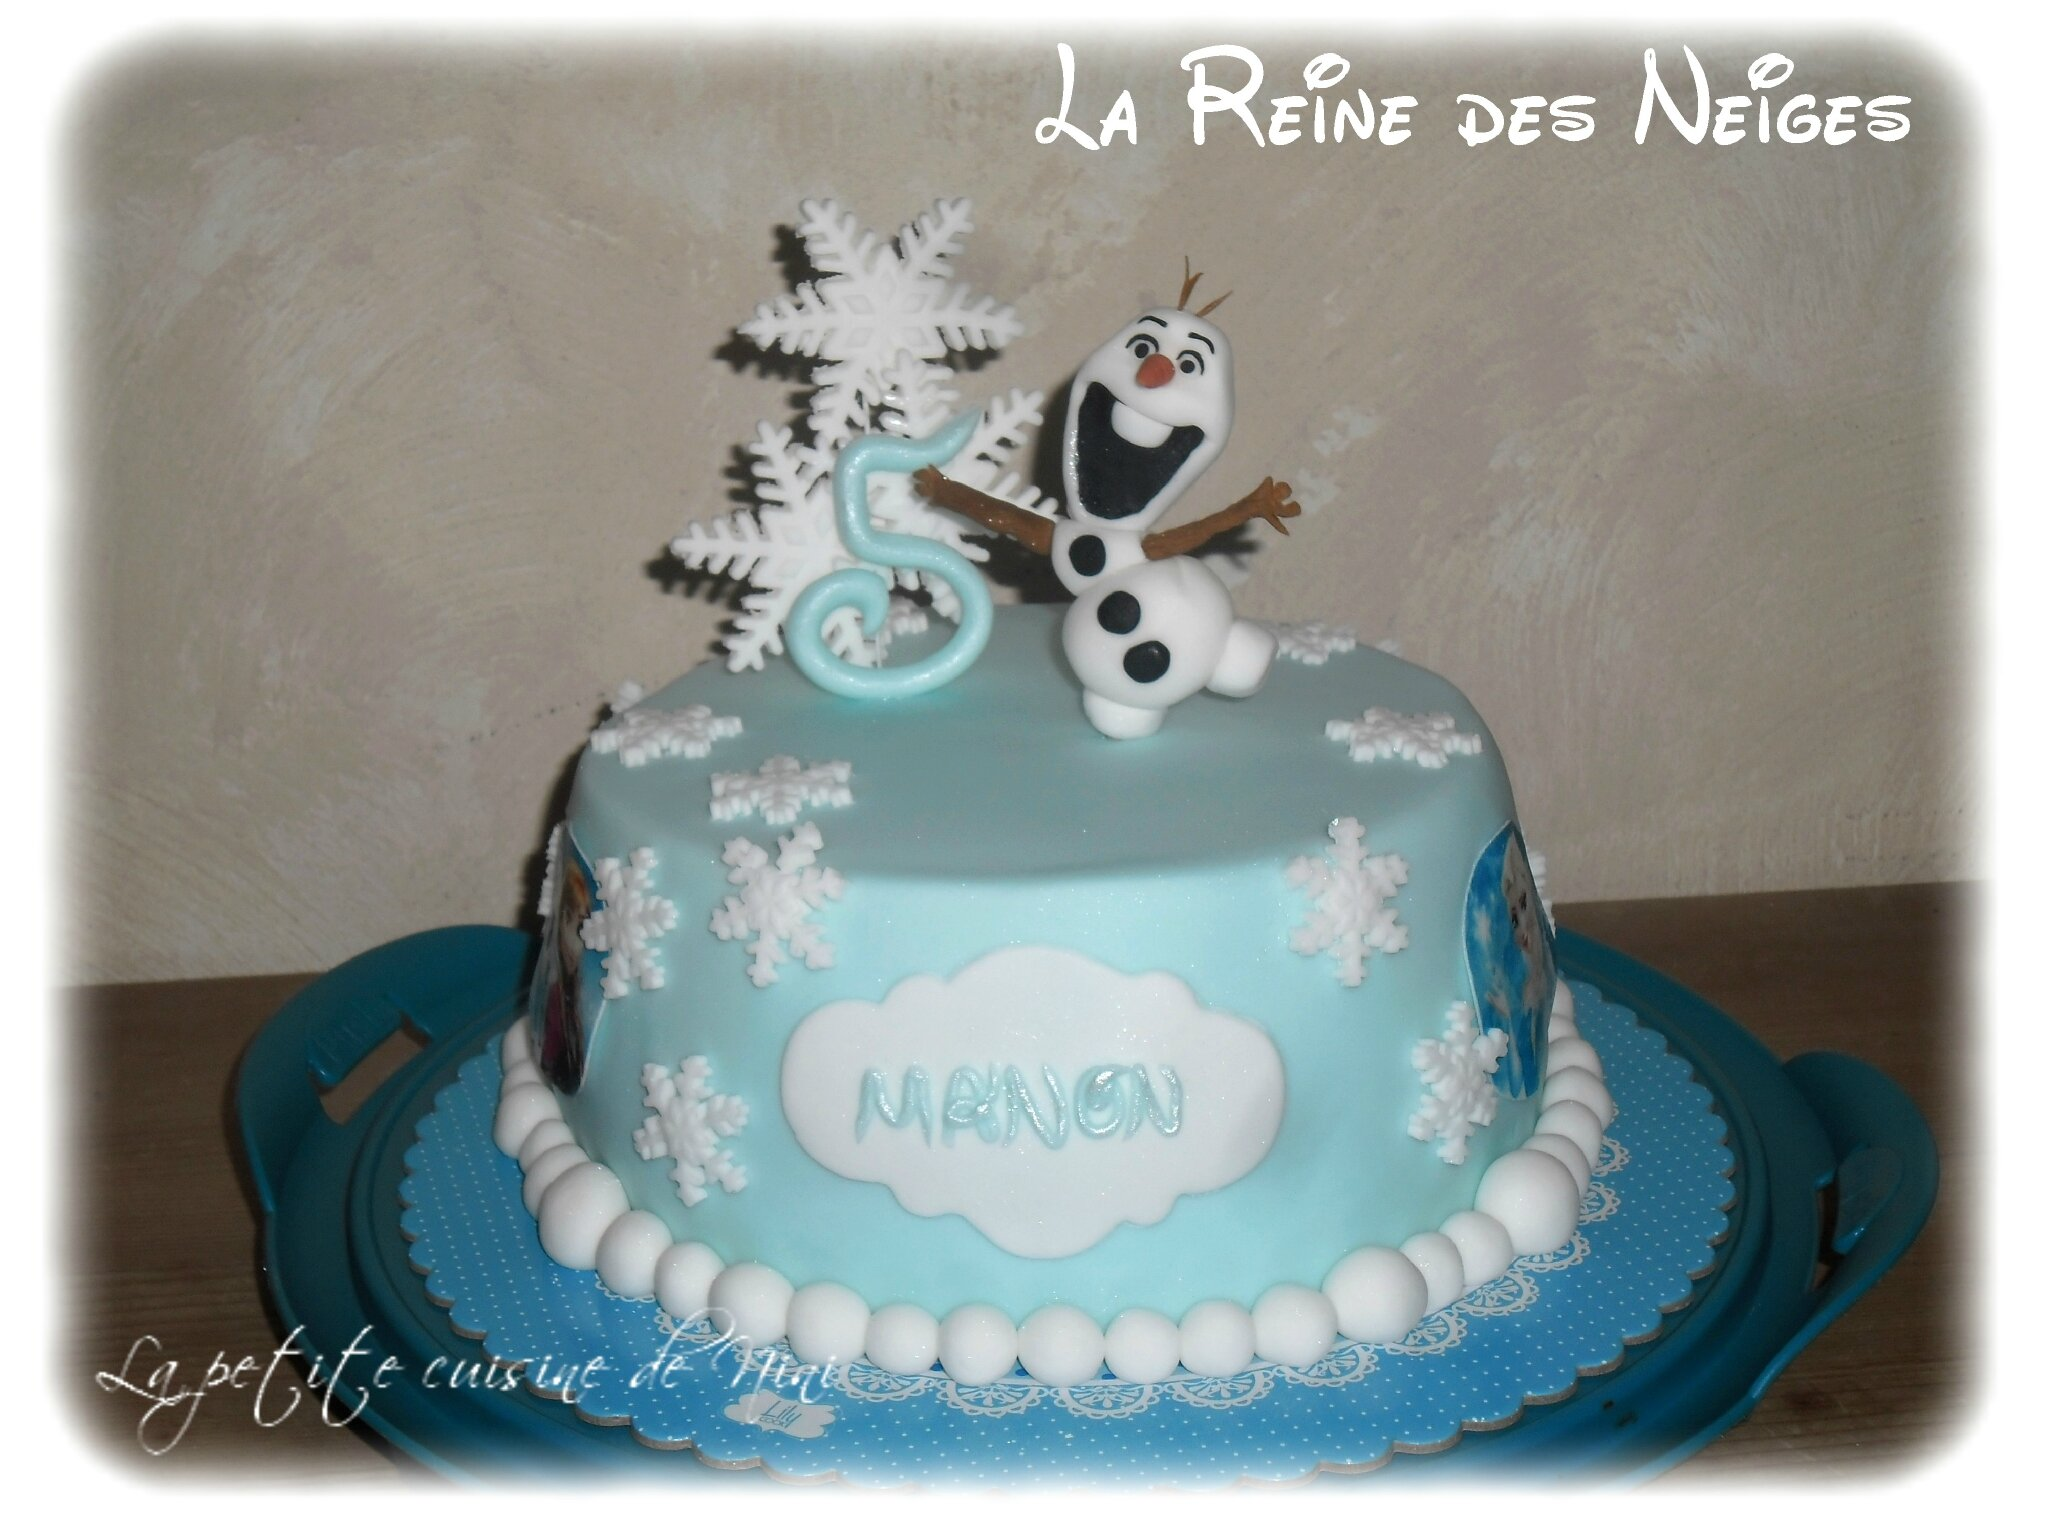 image gateau anniversaire la reine des neiges home. Black Bedroom Furniture Sets. Home Design Ideas